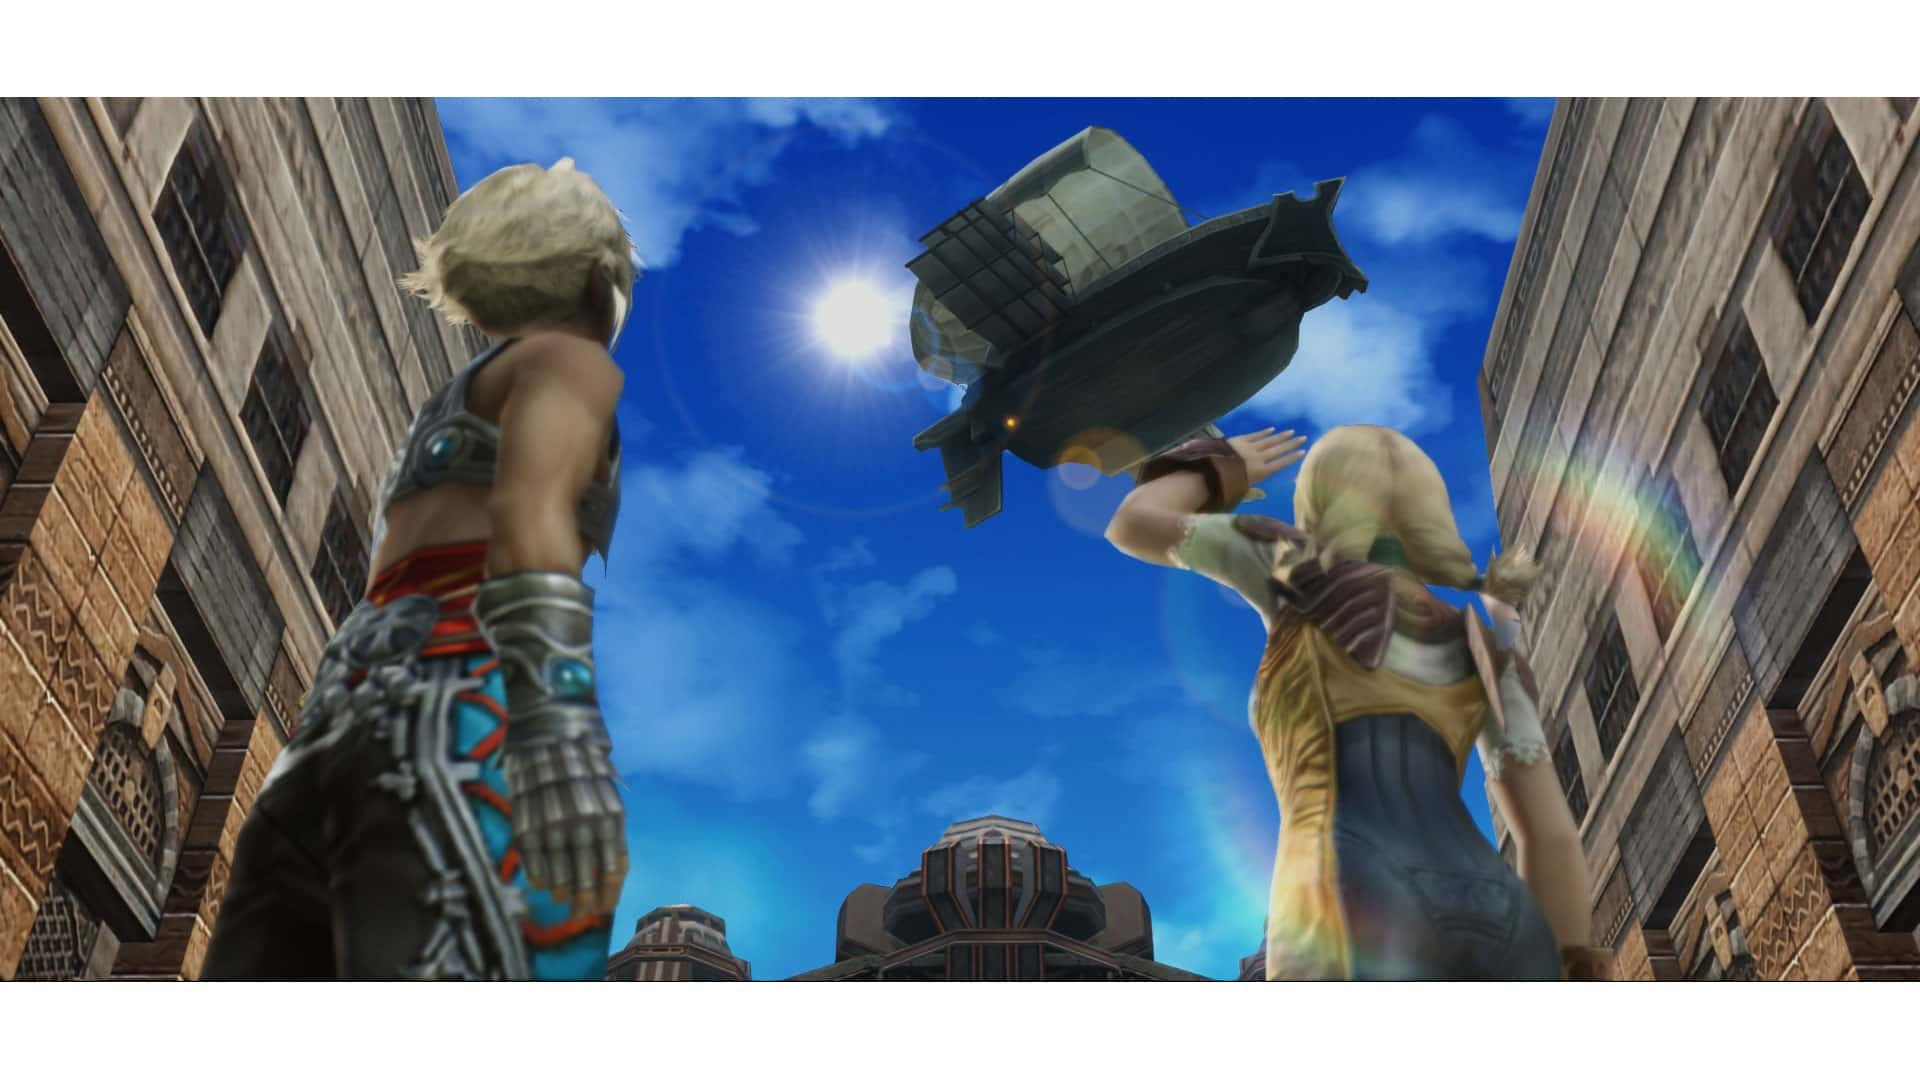 final_fantasy_xii_the_zodiac_age_screenshot_06